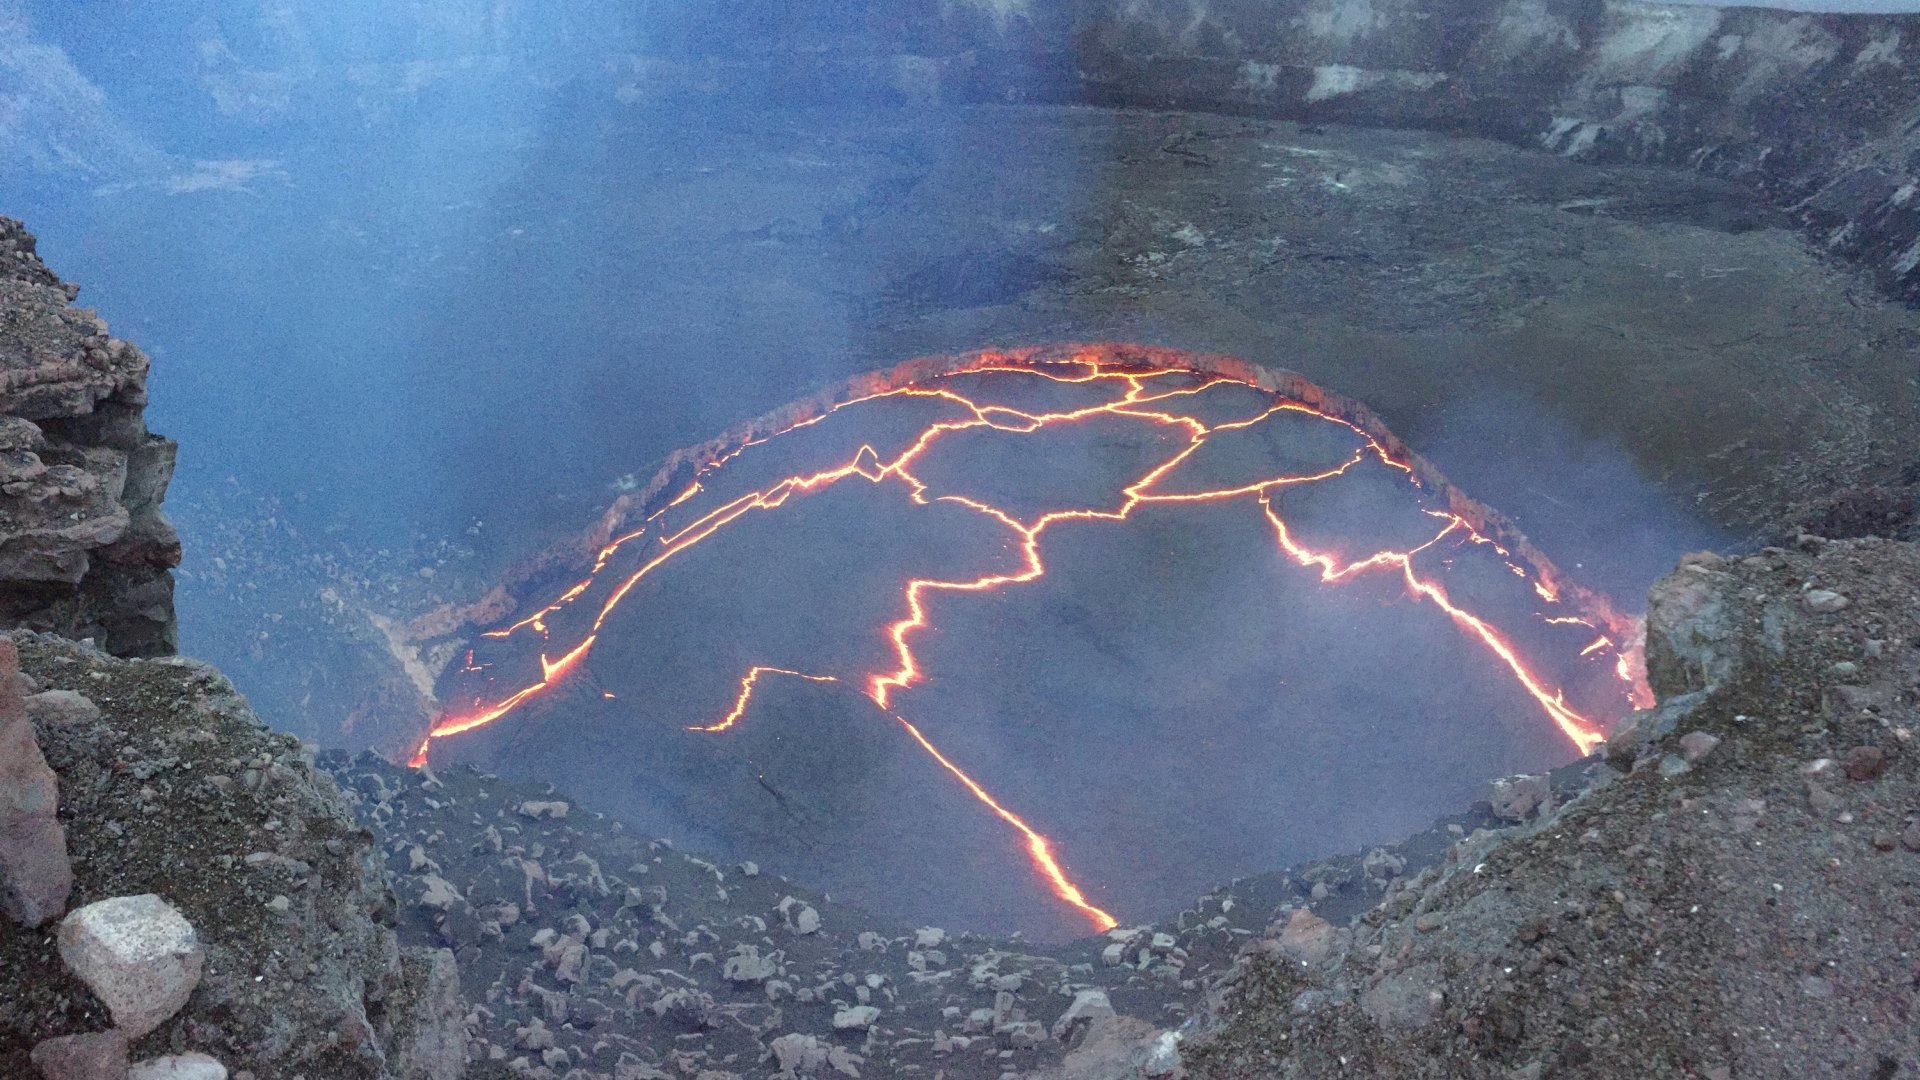 When the eruption of a volcano in Hawaii? What will happen to the lava?